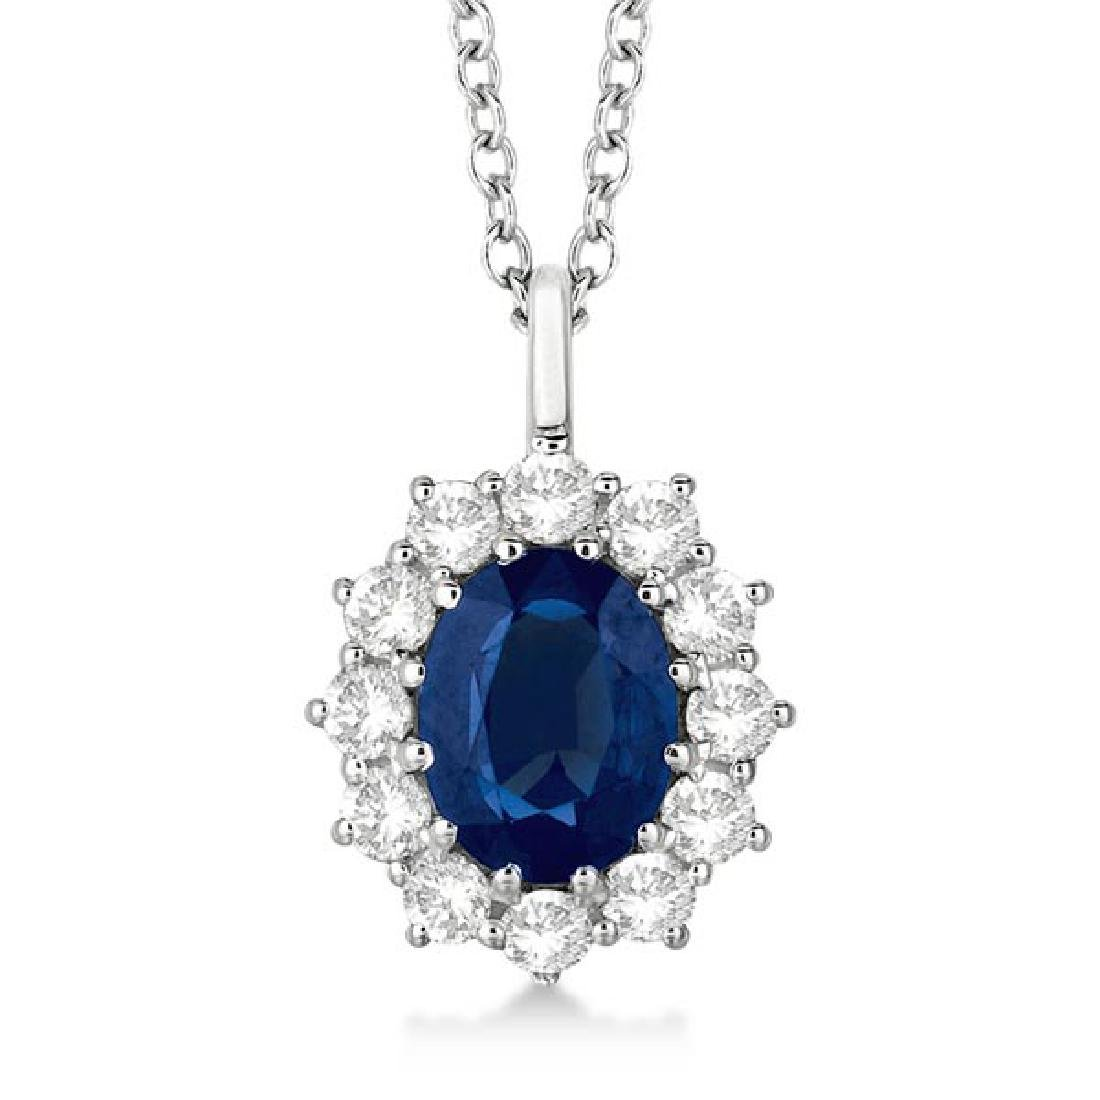 Oval Blue Sapphire and Diamond Pendant Necklace 14k Whi